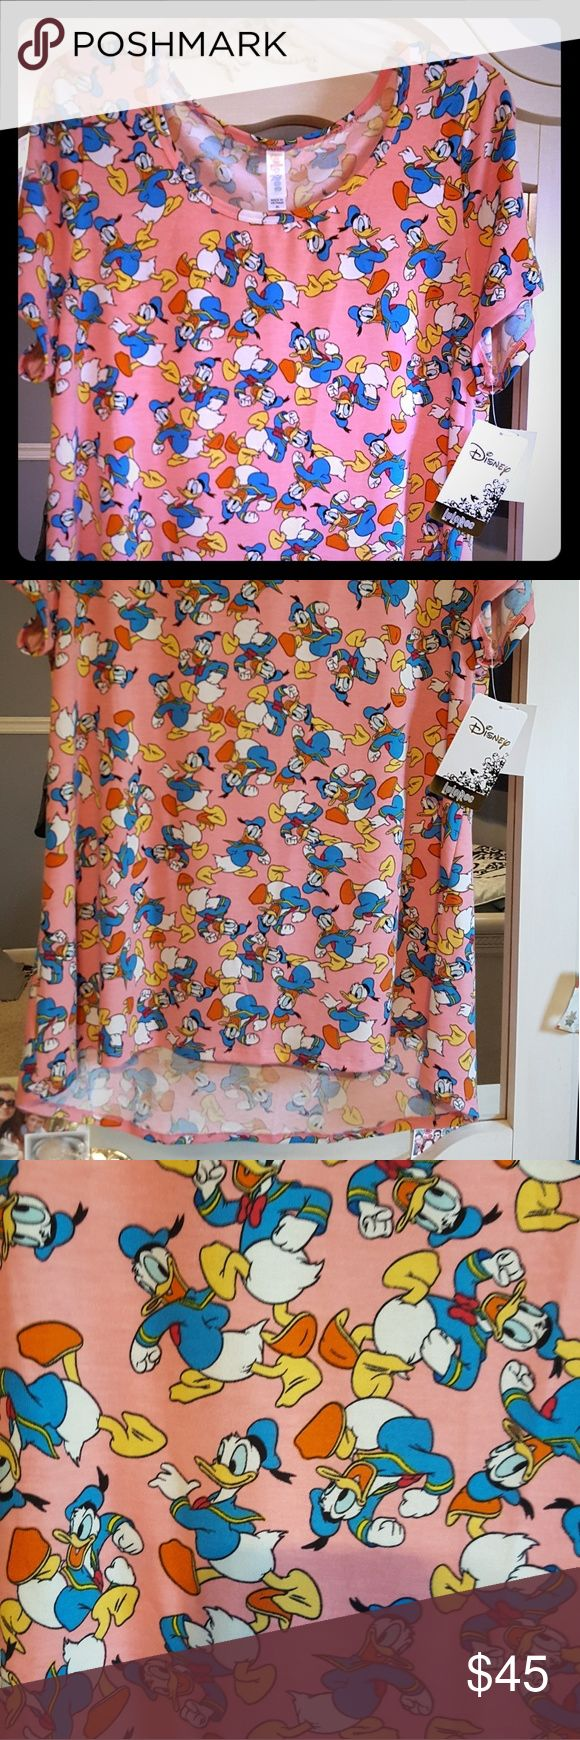 Lularoe Classic T Disney's Donald Duck NWT Classic T size XL (fits size 14-18. Adorable donald duck print with pink background. Colors are pretty. Added $5 to cover PM fees. Lularoe Tops Tees - Short Sleeve